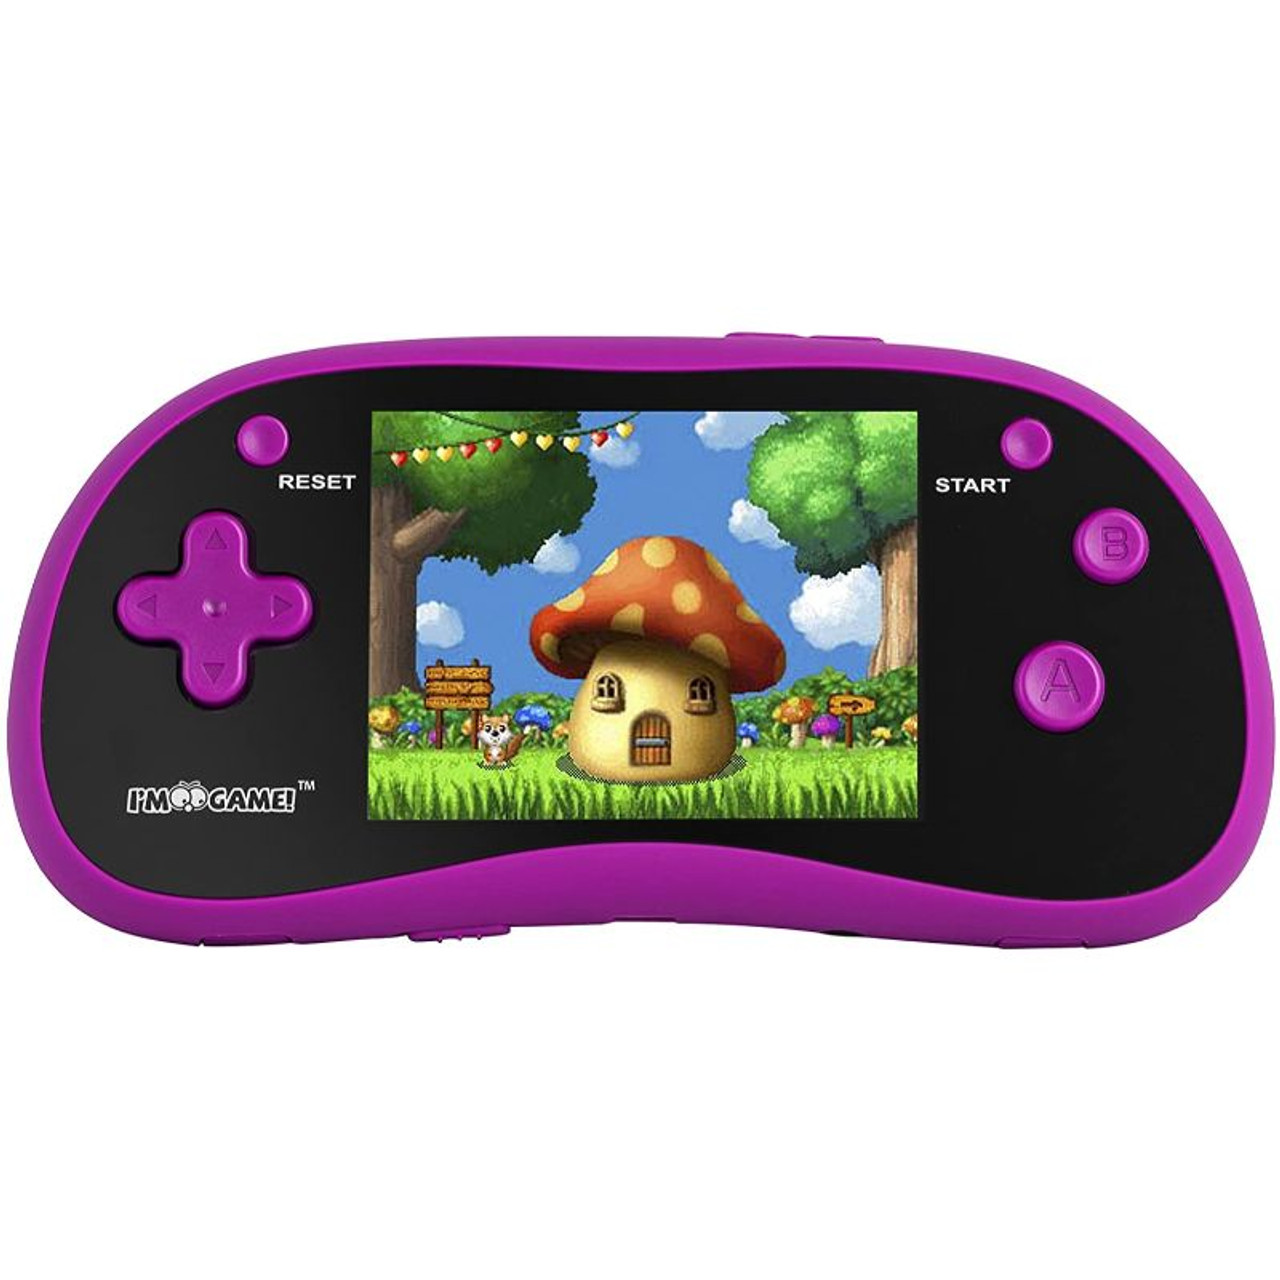 IM-Game Portable Handheld Retro Game Console, with 220 Games and 3 inch Color Display